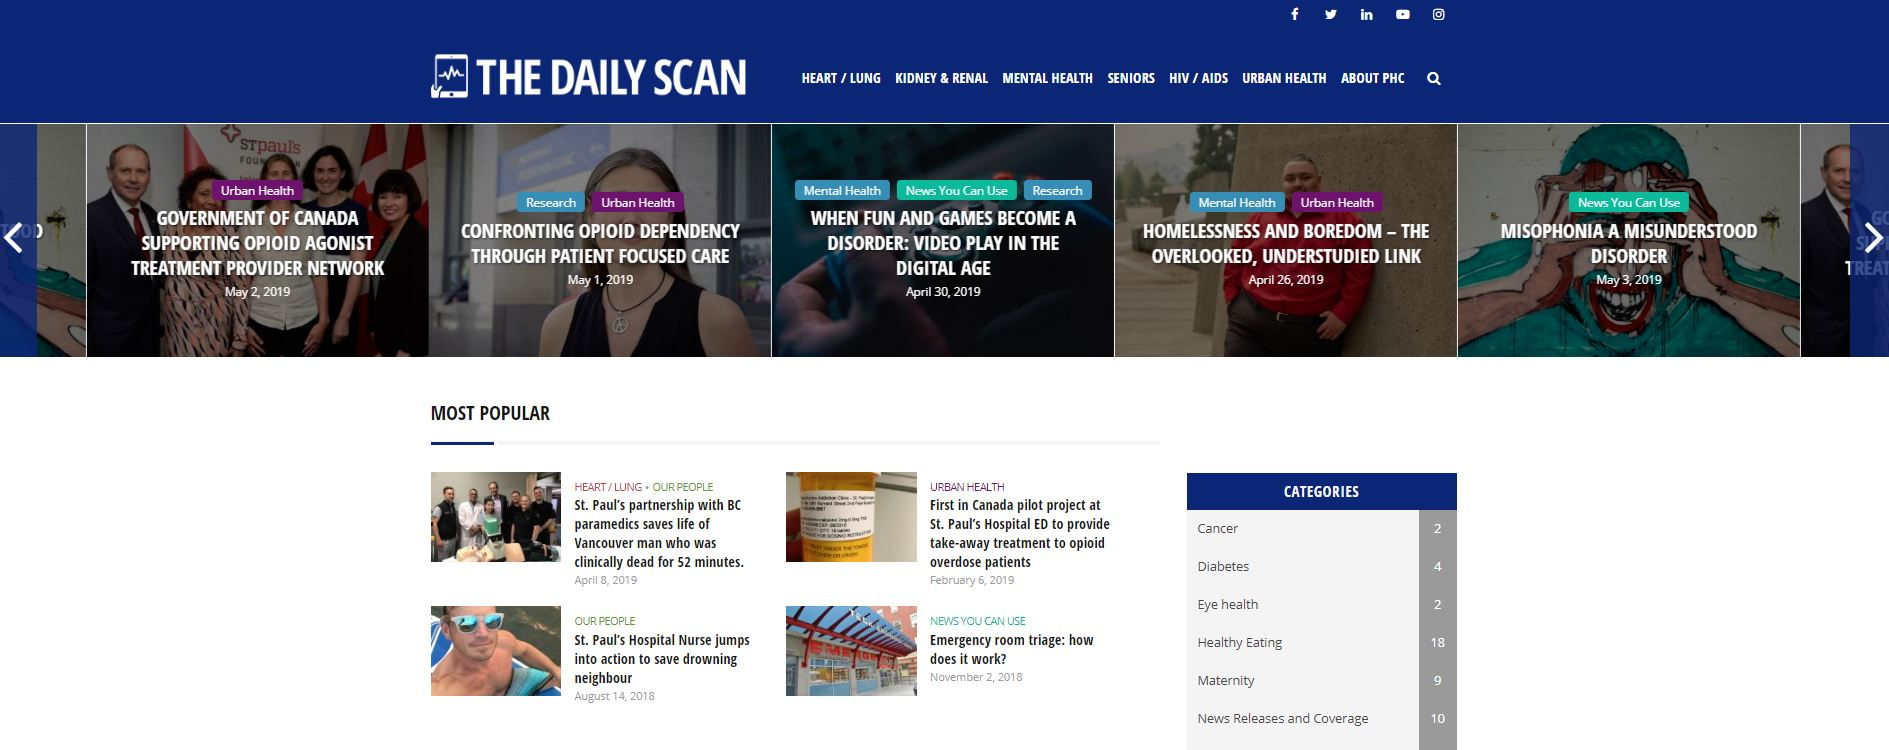 Visit The Daily Scan for your daily health news   Providence